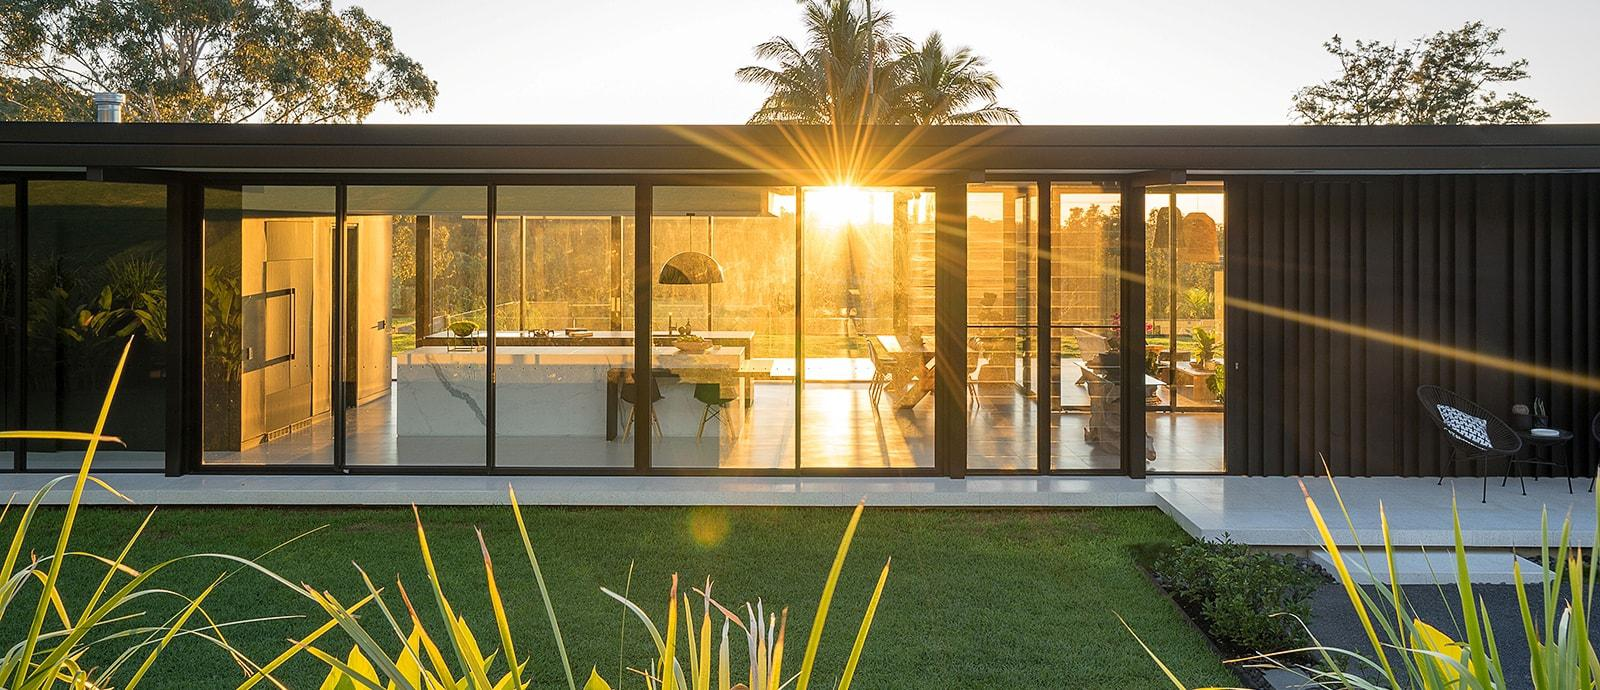 Sarah_Waller_Design_Hero_2_Doonan_Glasshouse_Sunrise_through_windows_image_1600_1-min